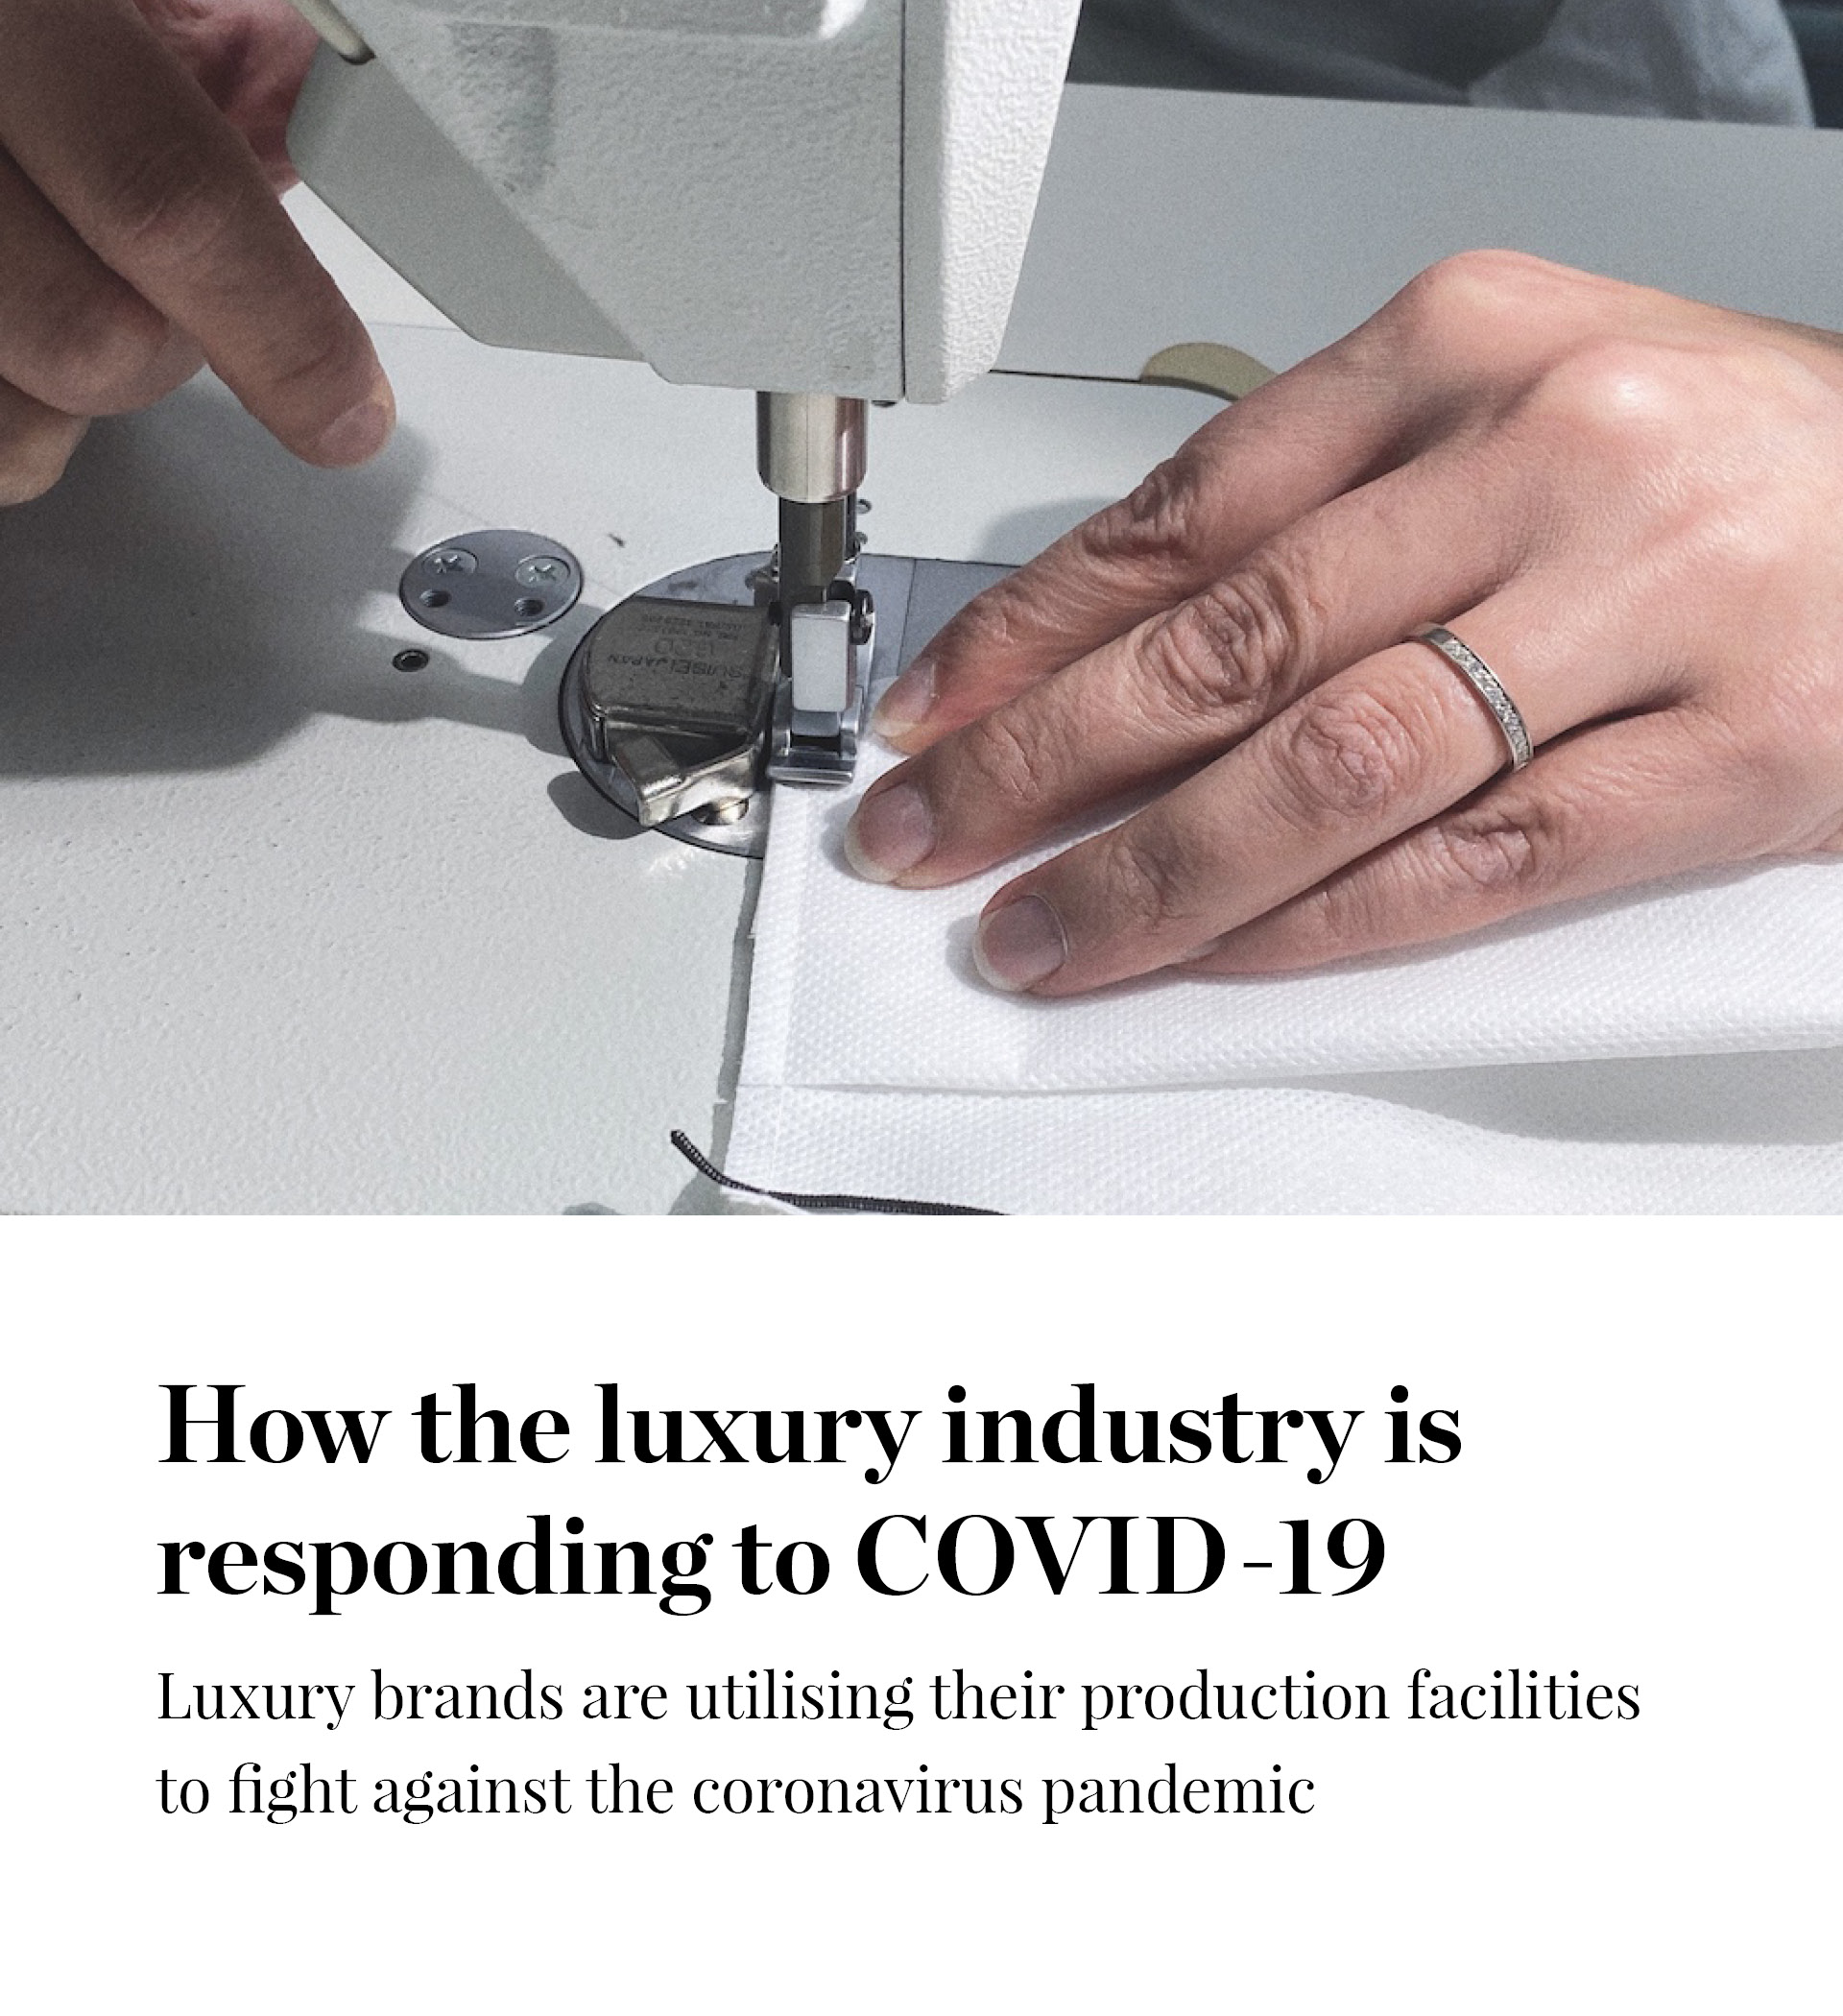 How luxury brands are responding to COVID-19